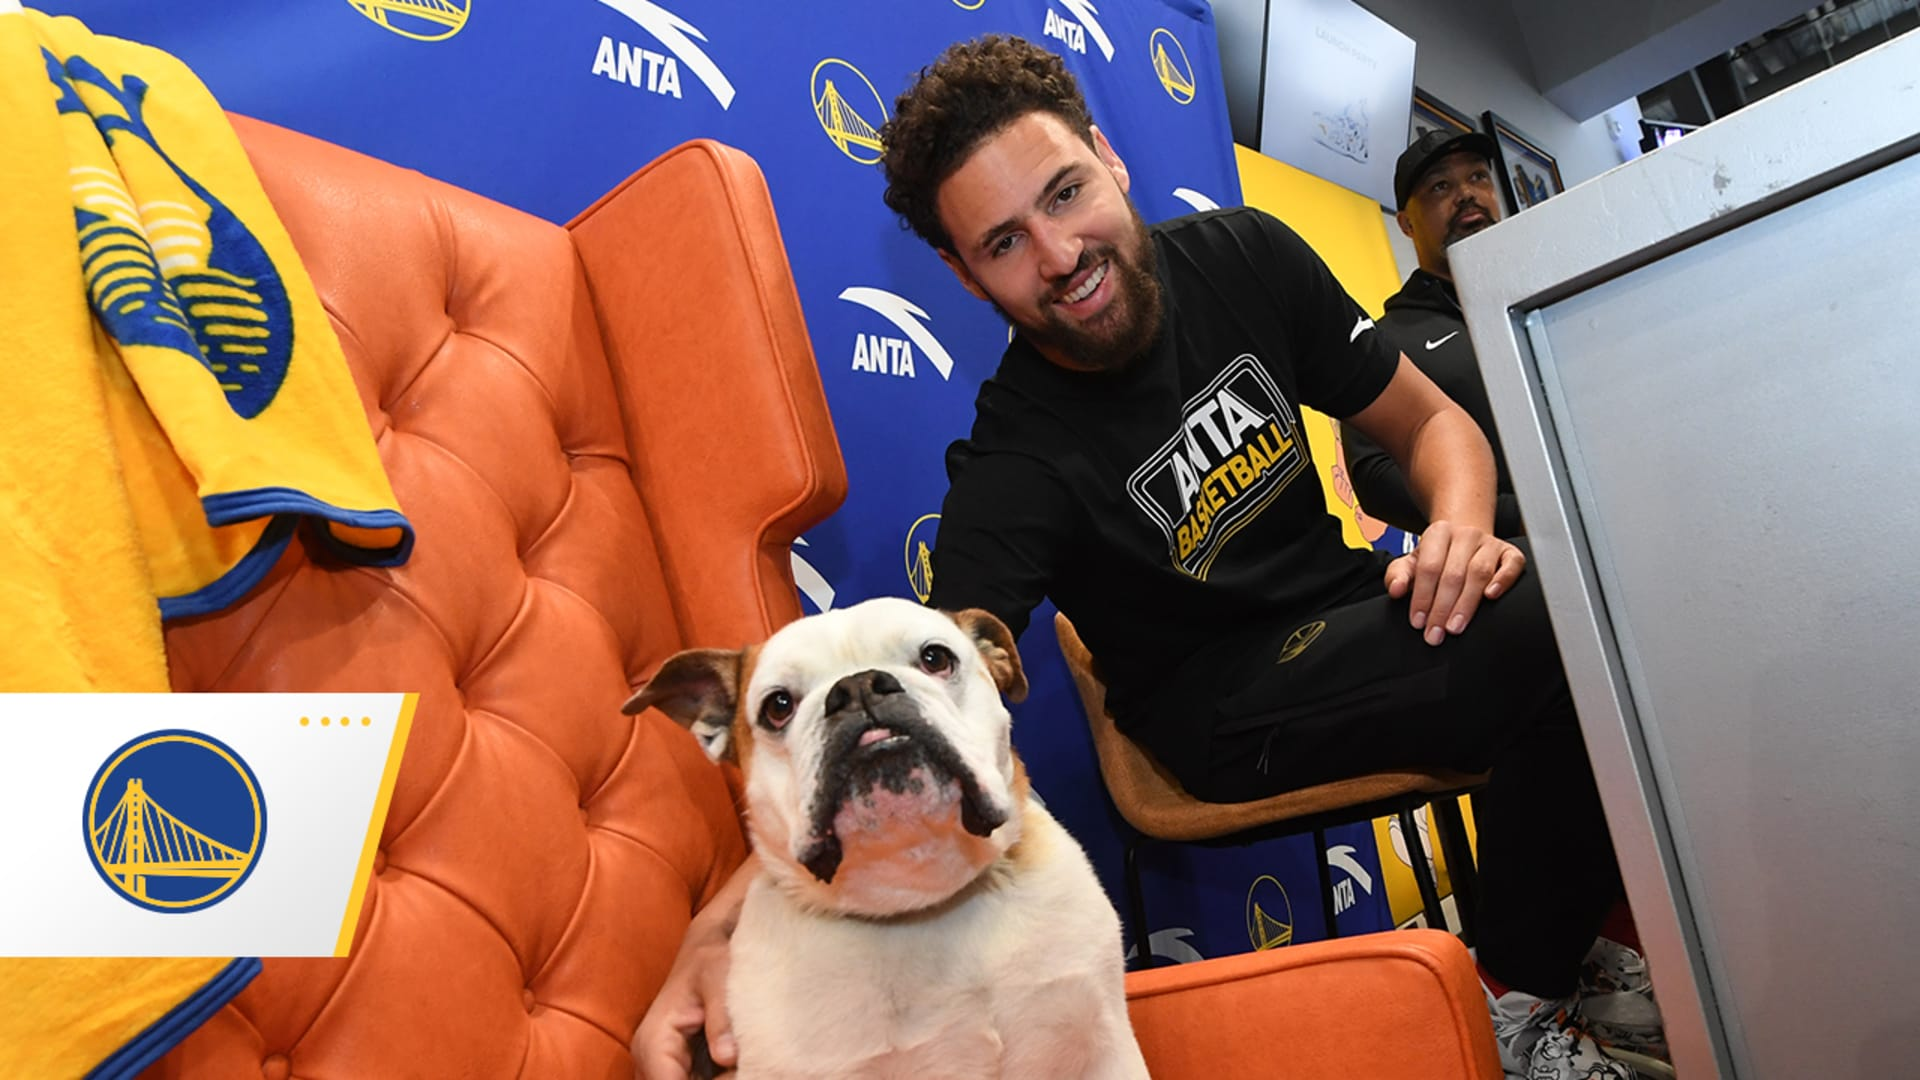 Klay and Rocco Unveil New Anta KT5 Colorway